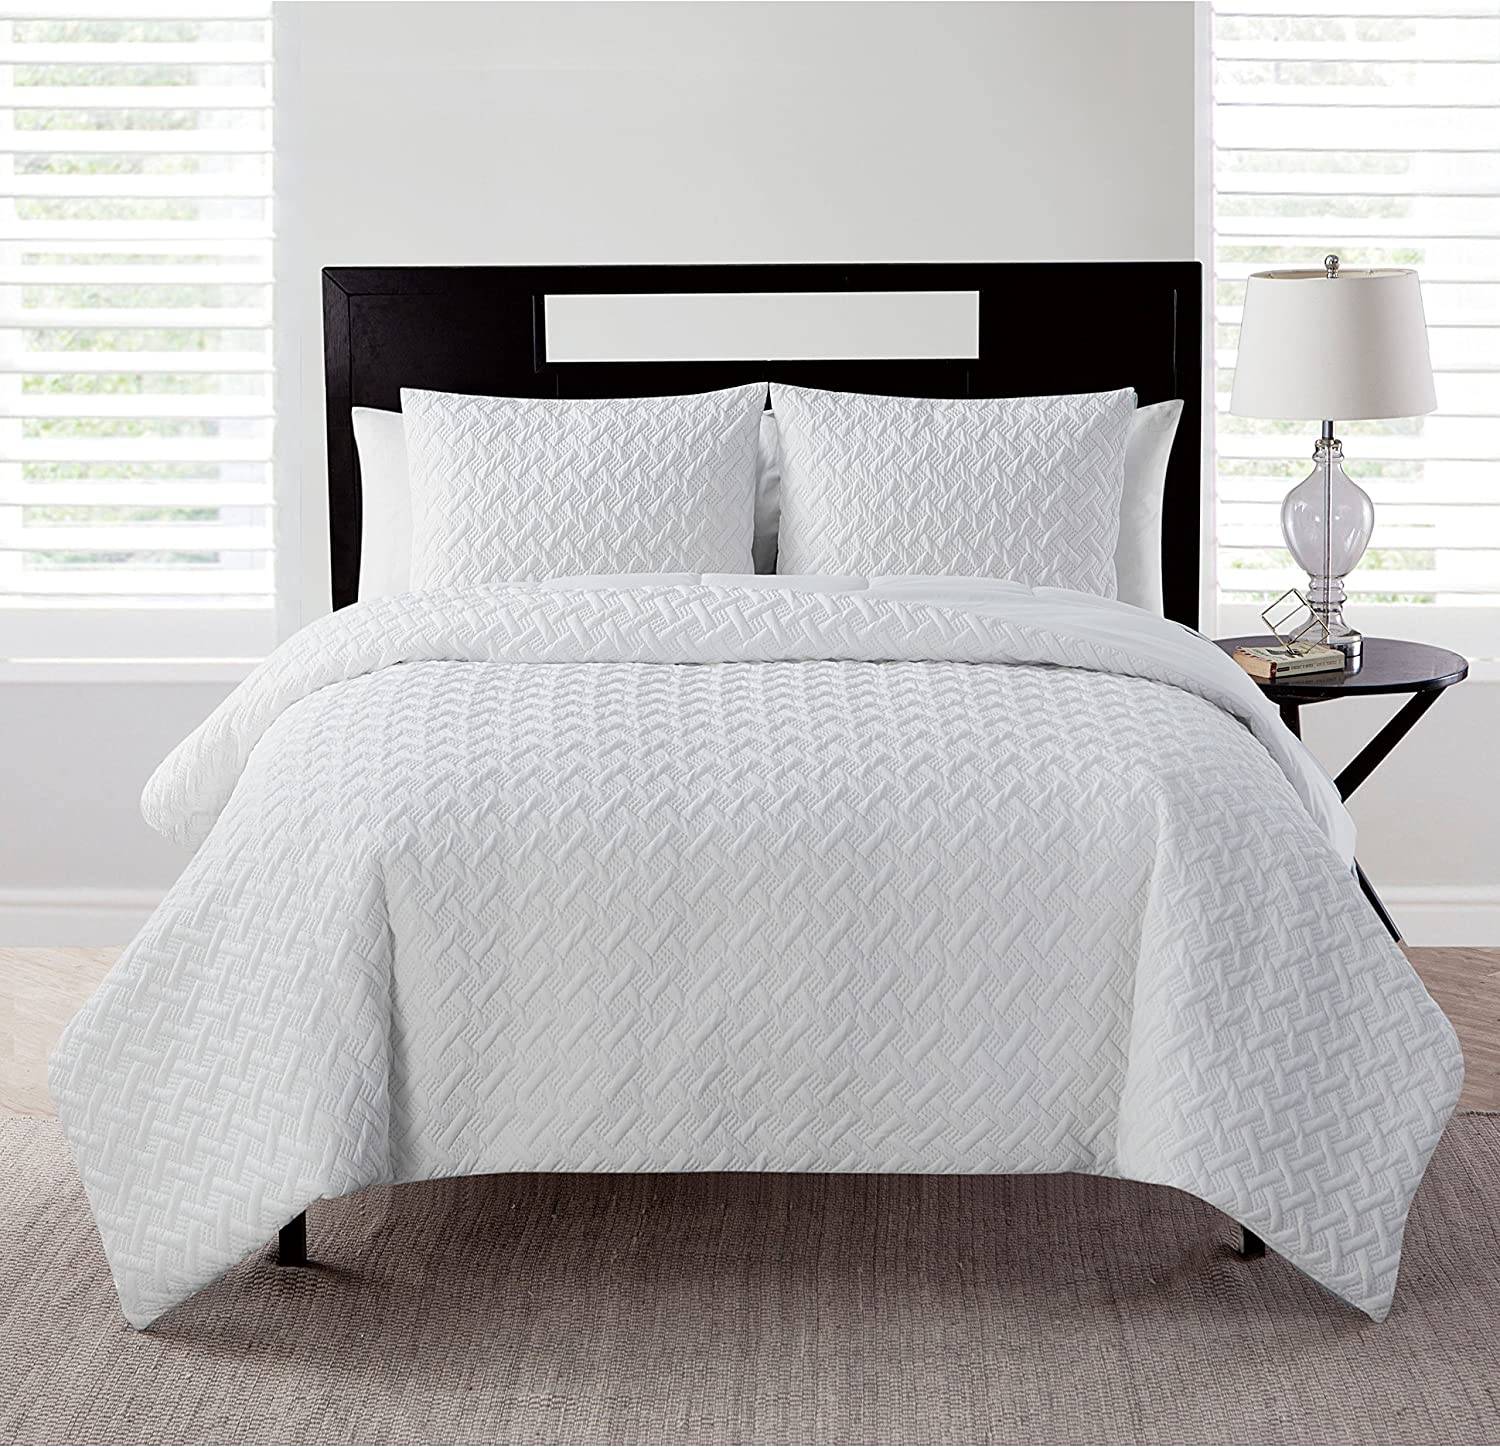 VCNY Home Nina Collection Comforter Set - Ultra-Soft Bedding - Embossed Geometric Pattern Texture - Smooth, Cool, and Breathable, Machine Washable, Twin/TwinXL, Taupe 2 Piece